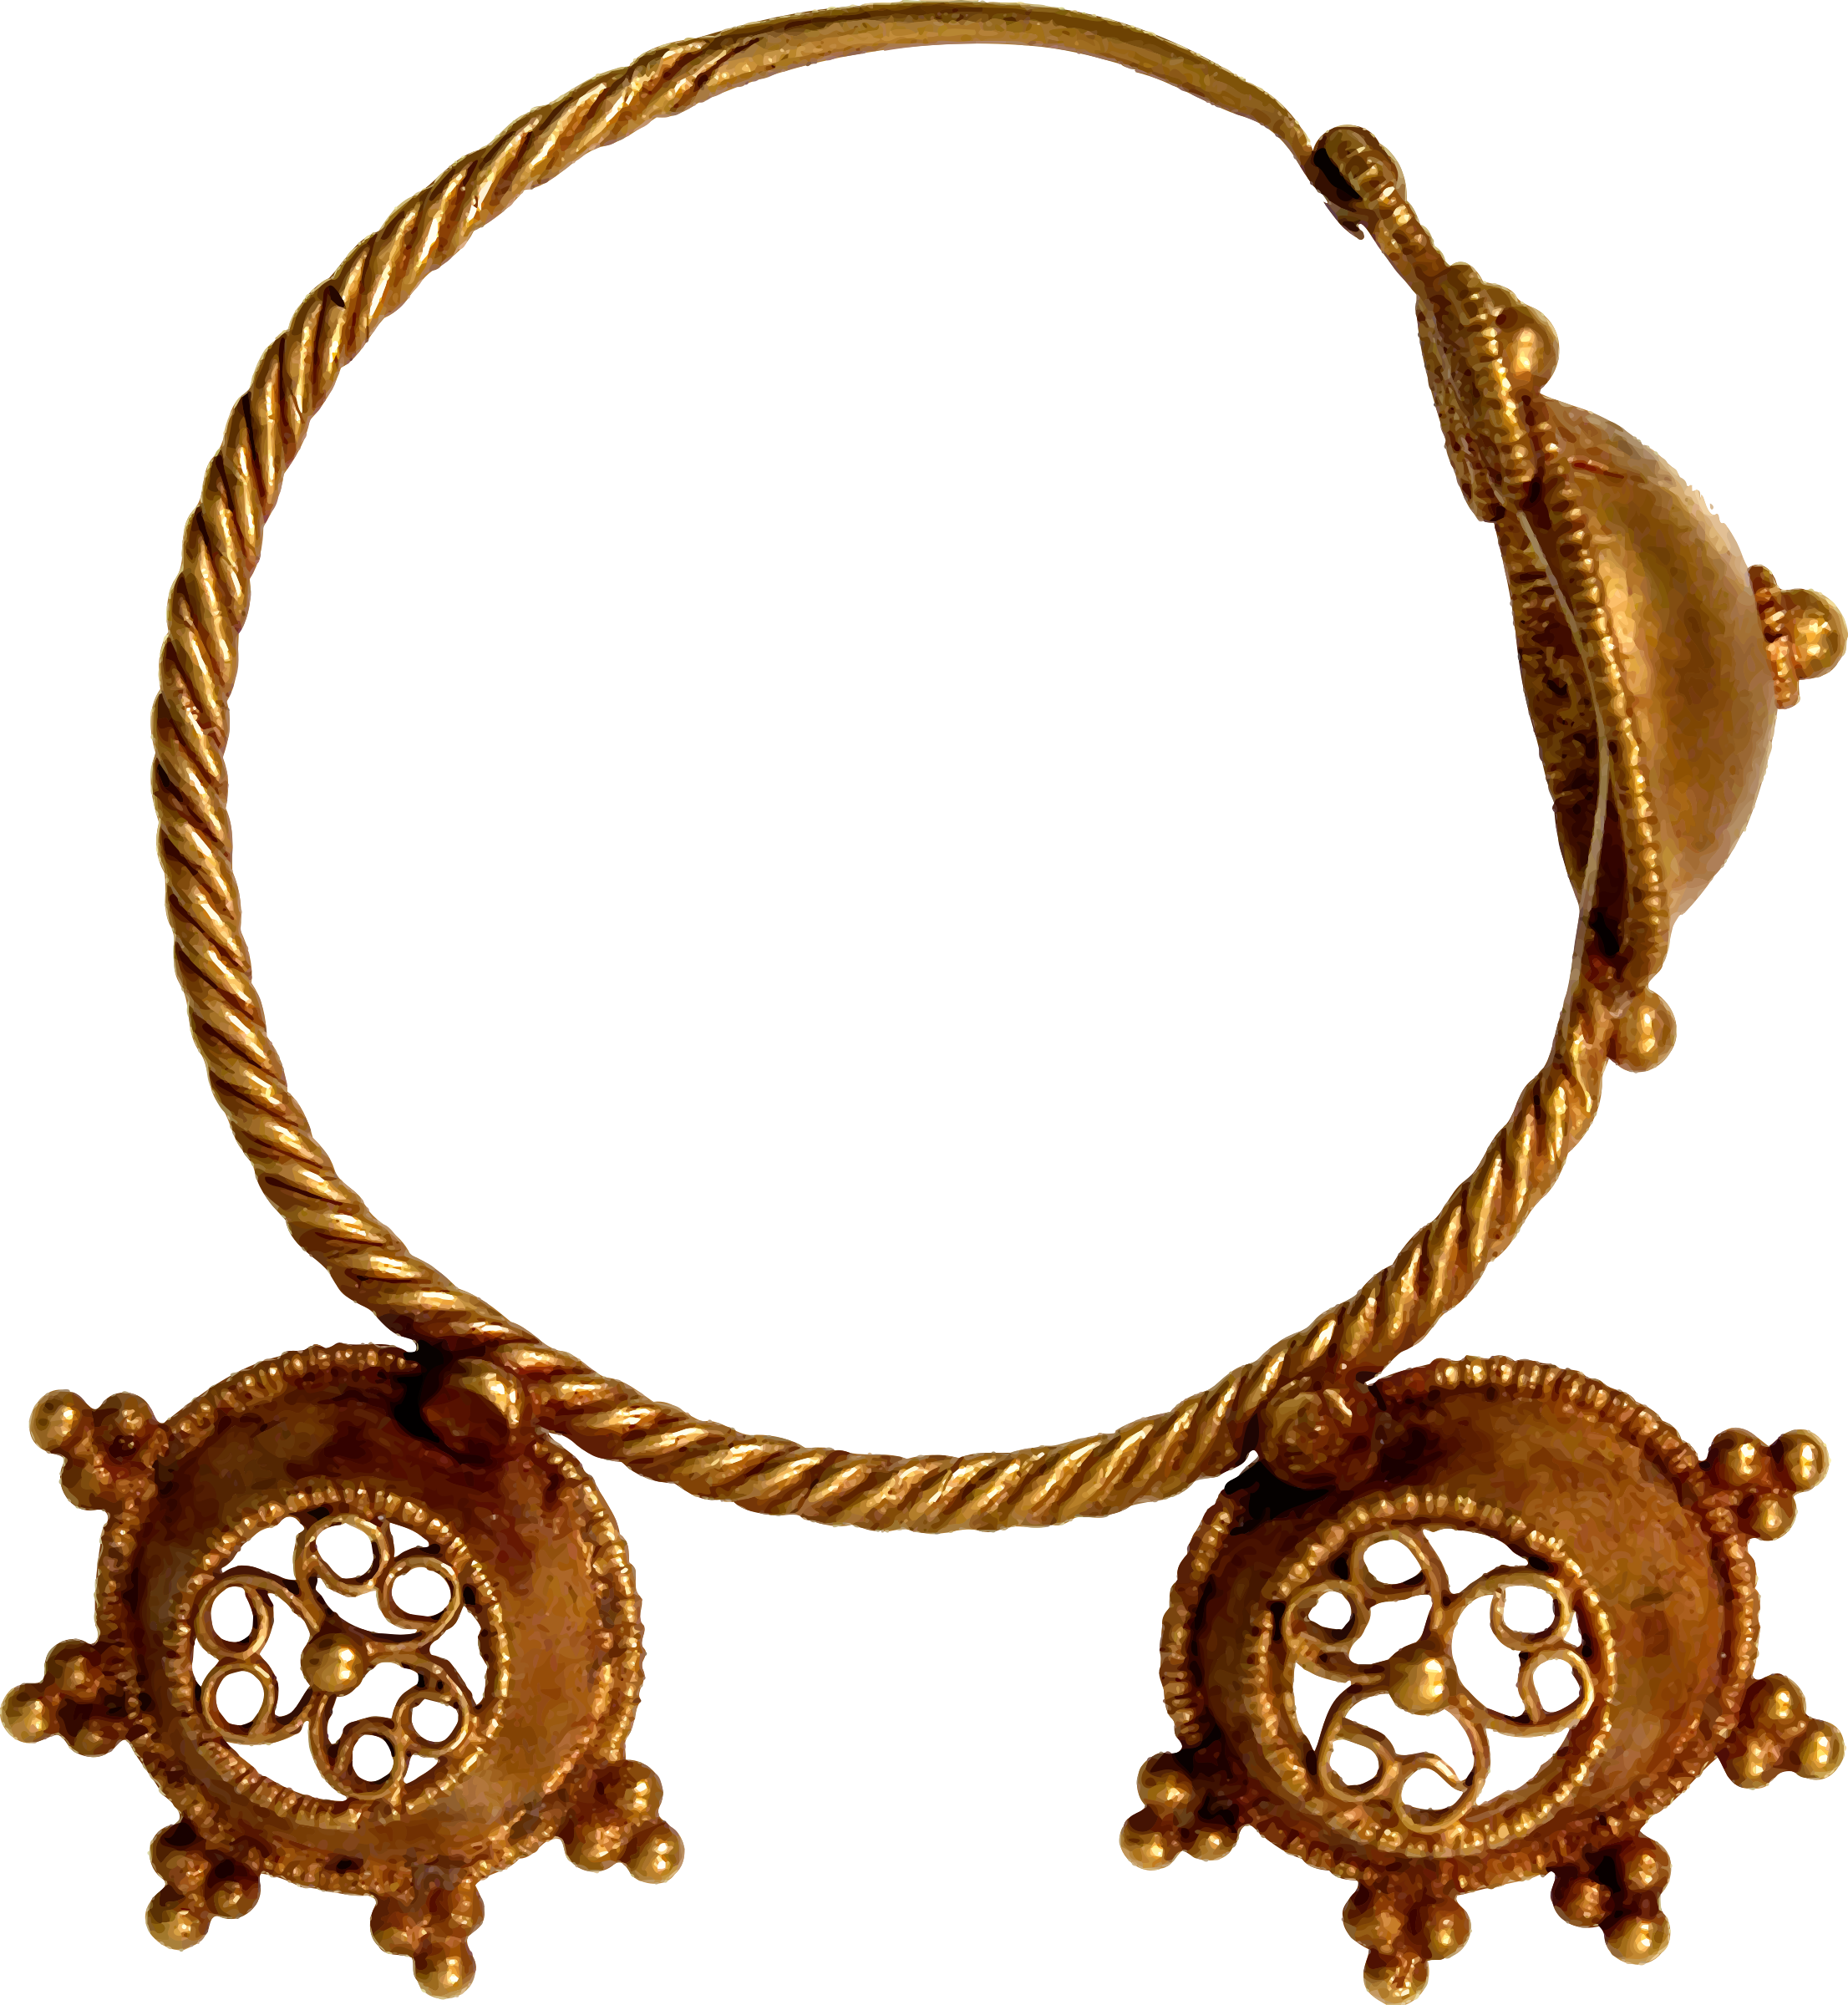 7th century earring by Firkin